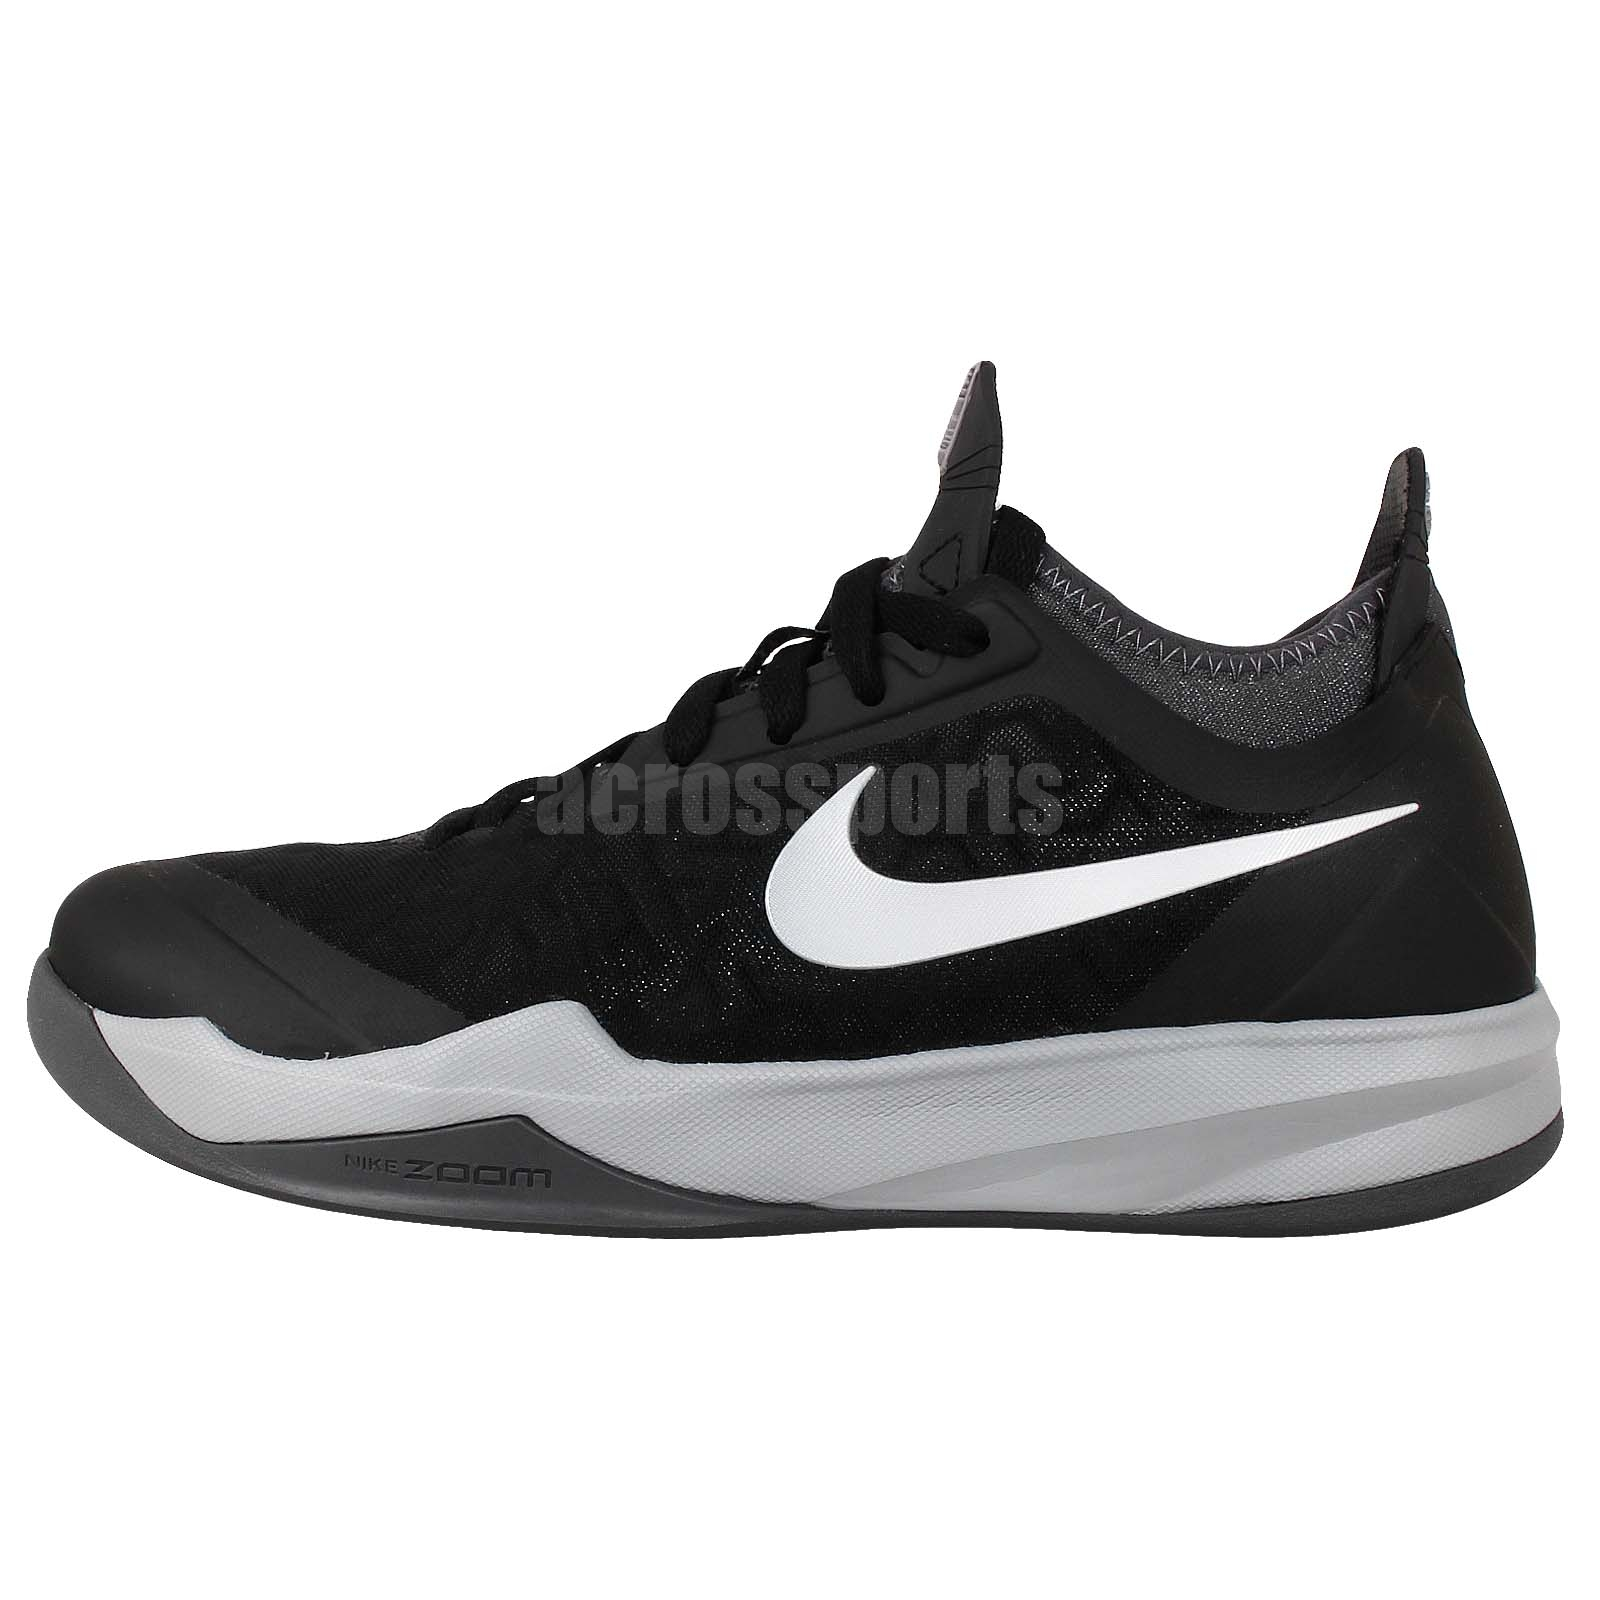 Nike Crusader Shoes Amazon